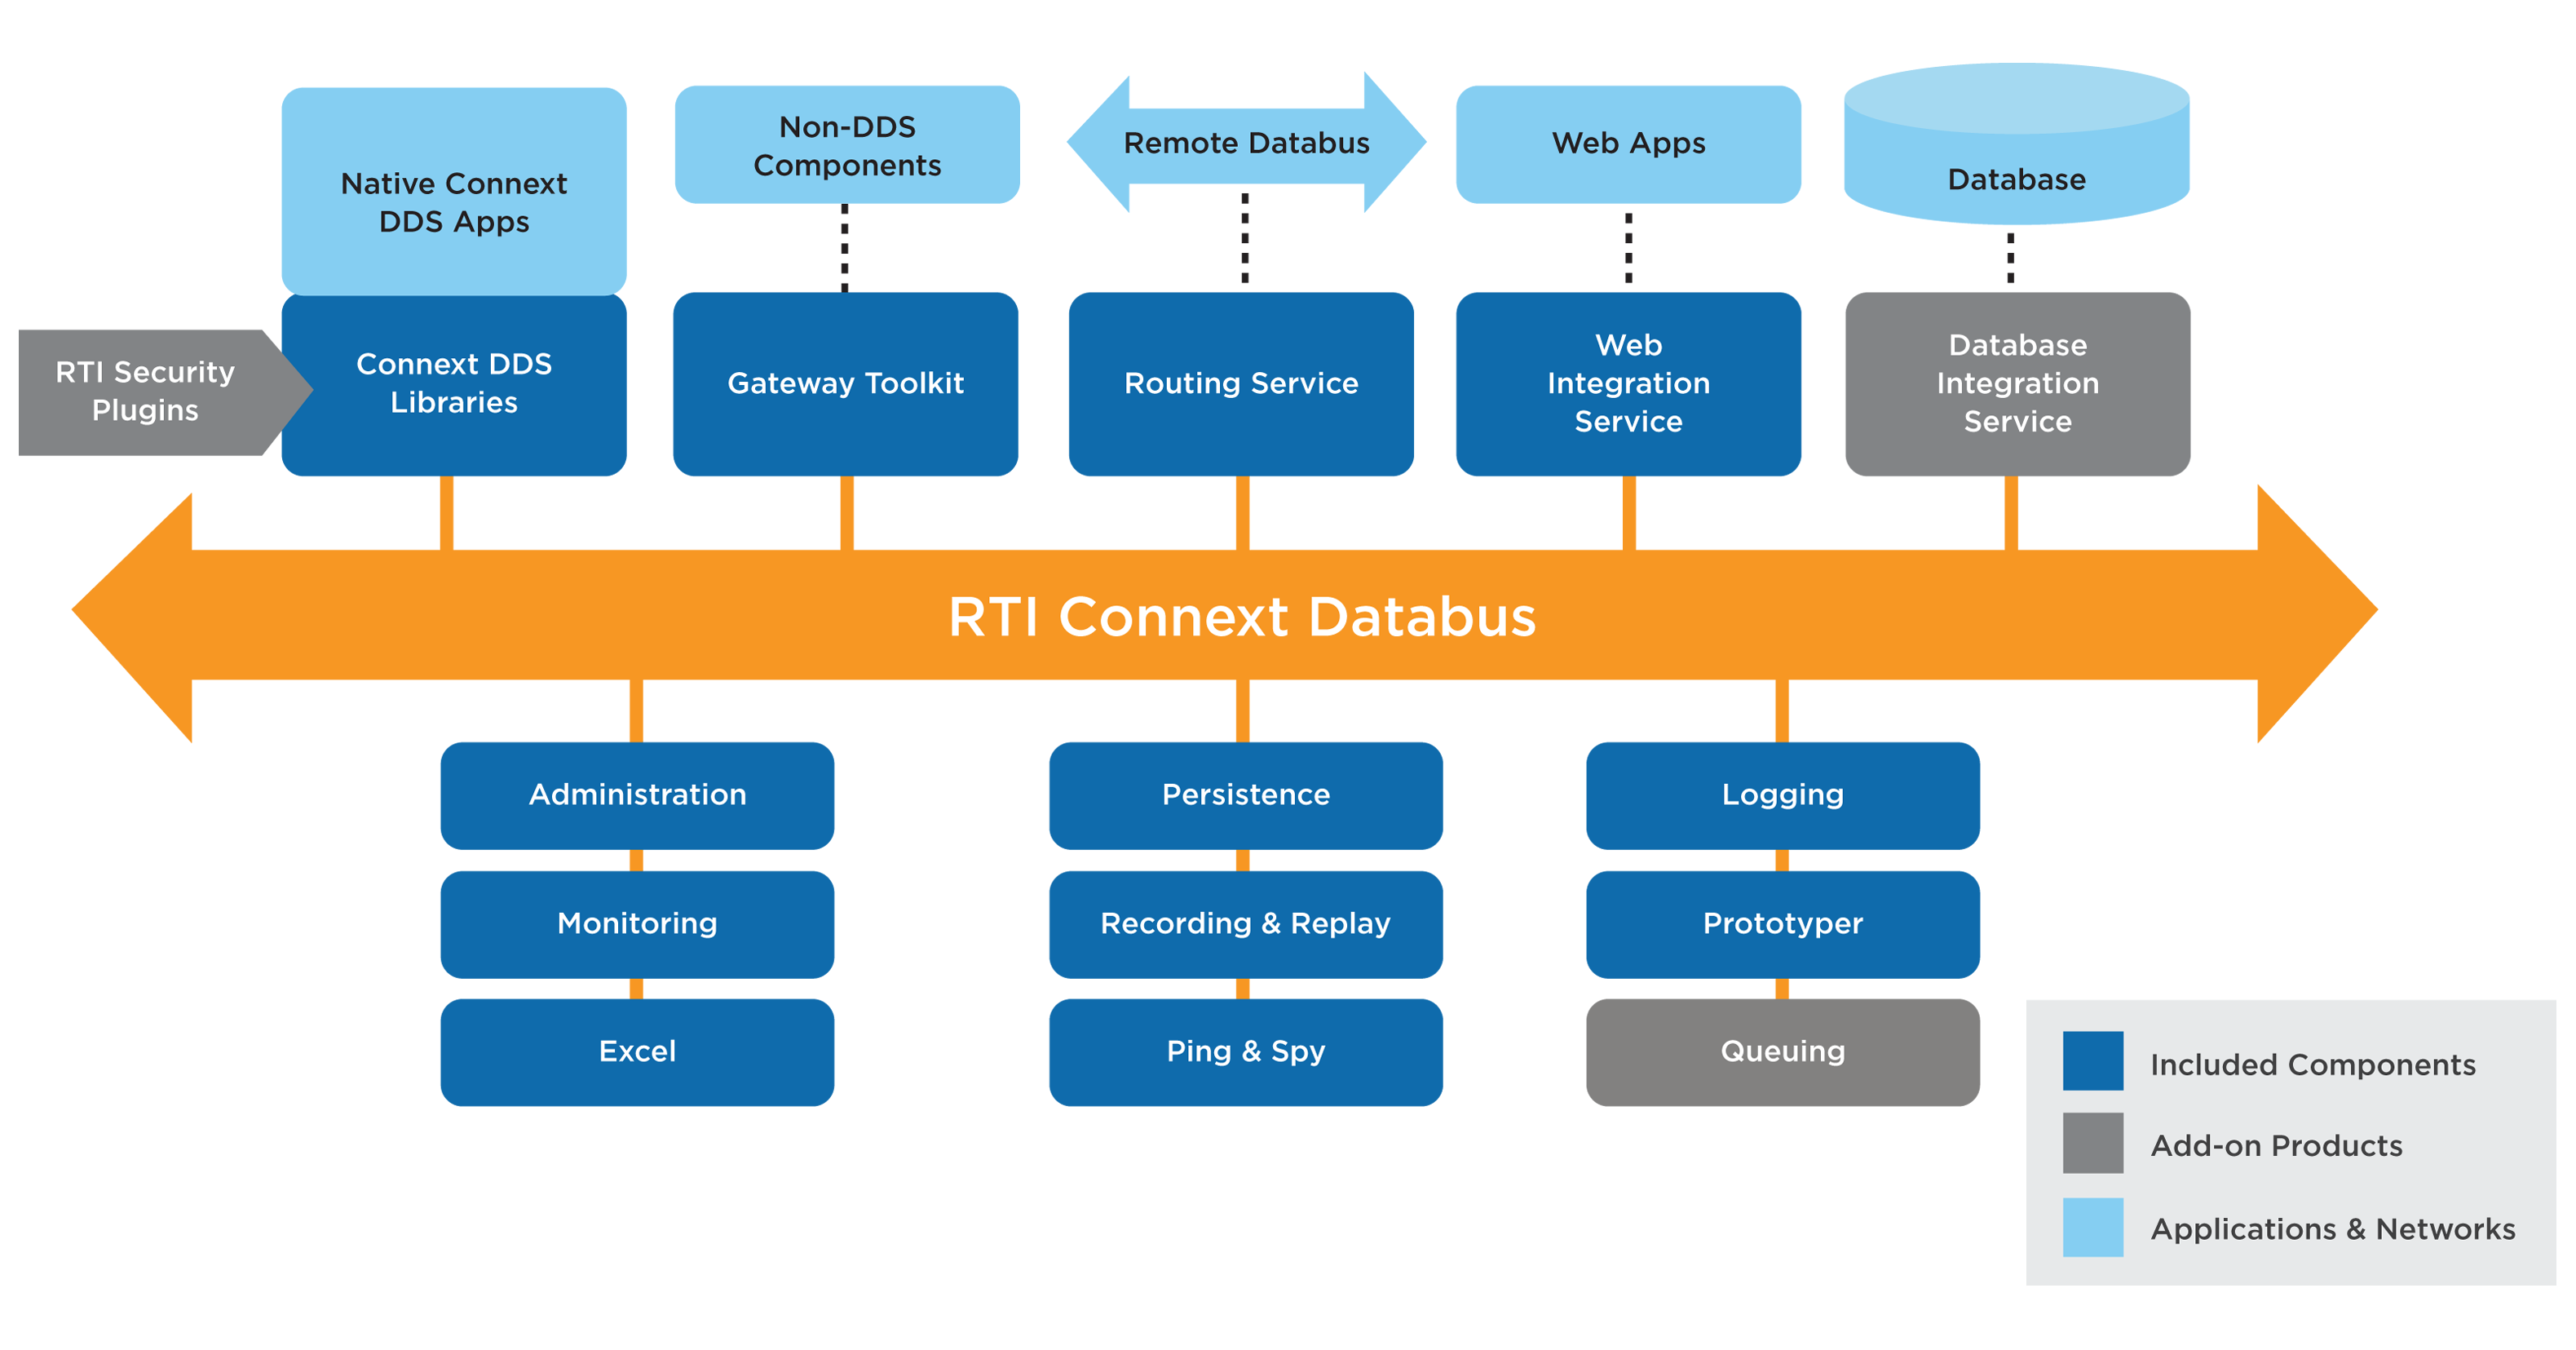 RTI_Diagram_Connext_DDS_Professional.png